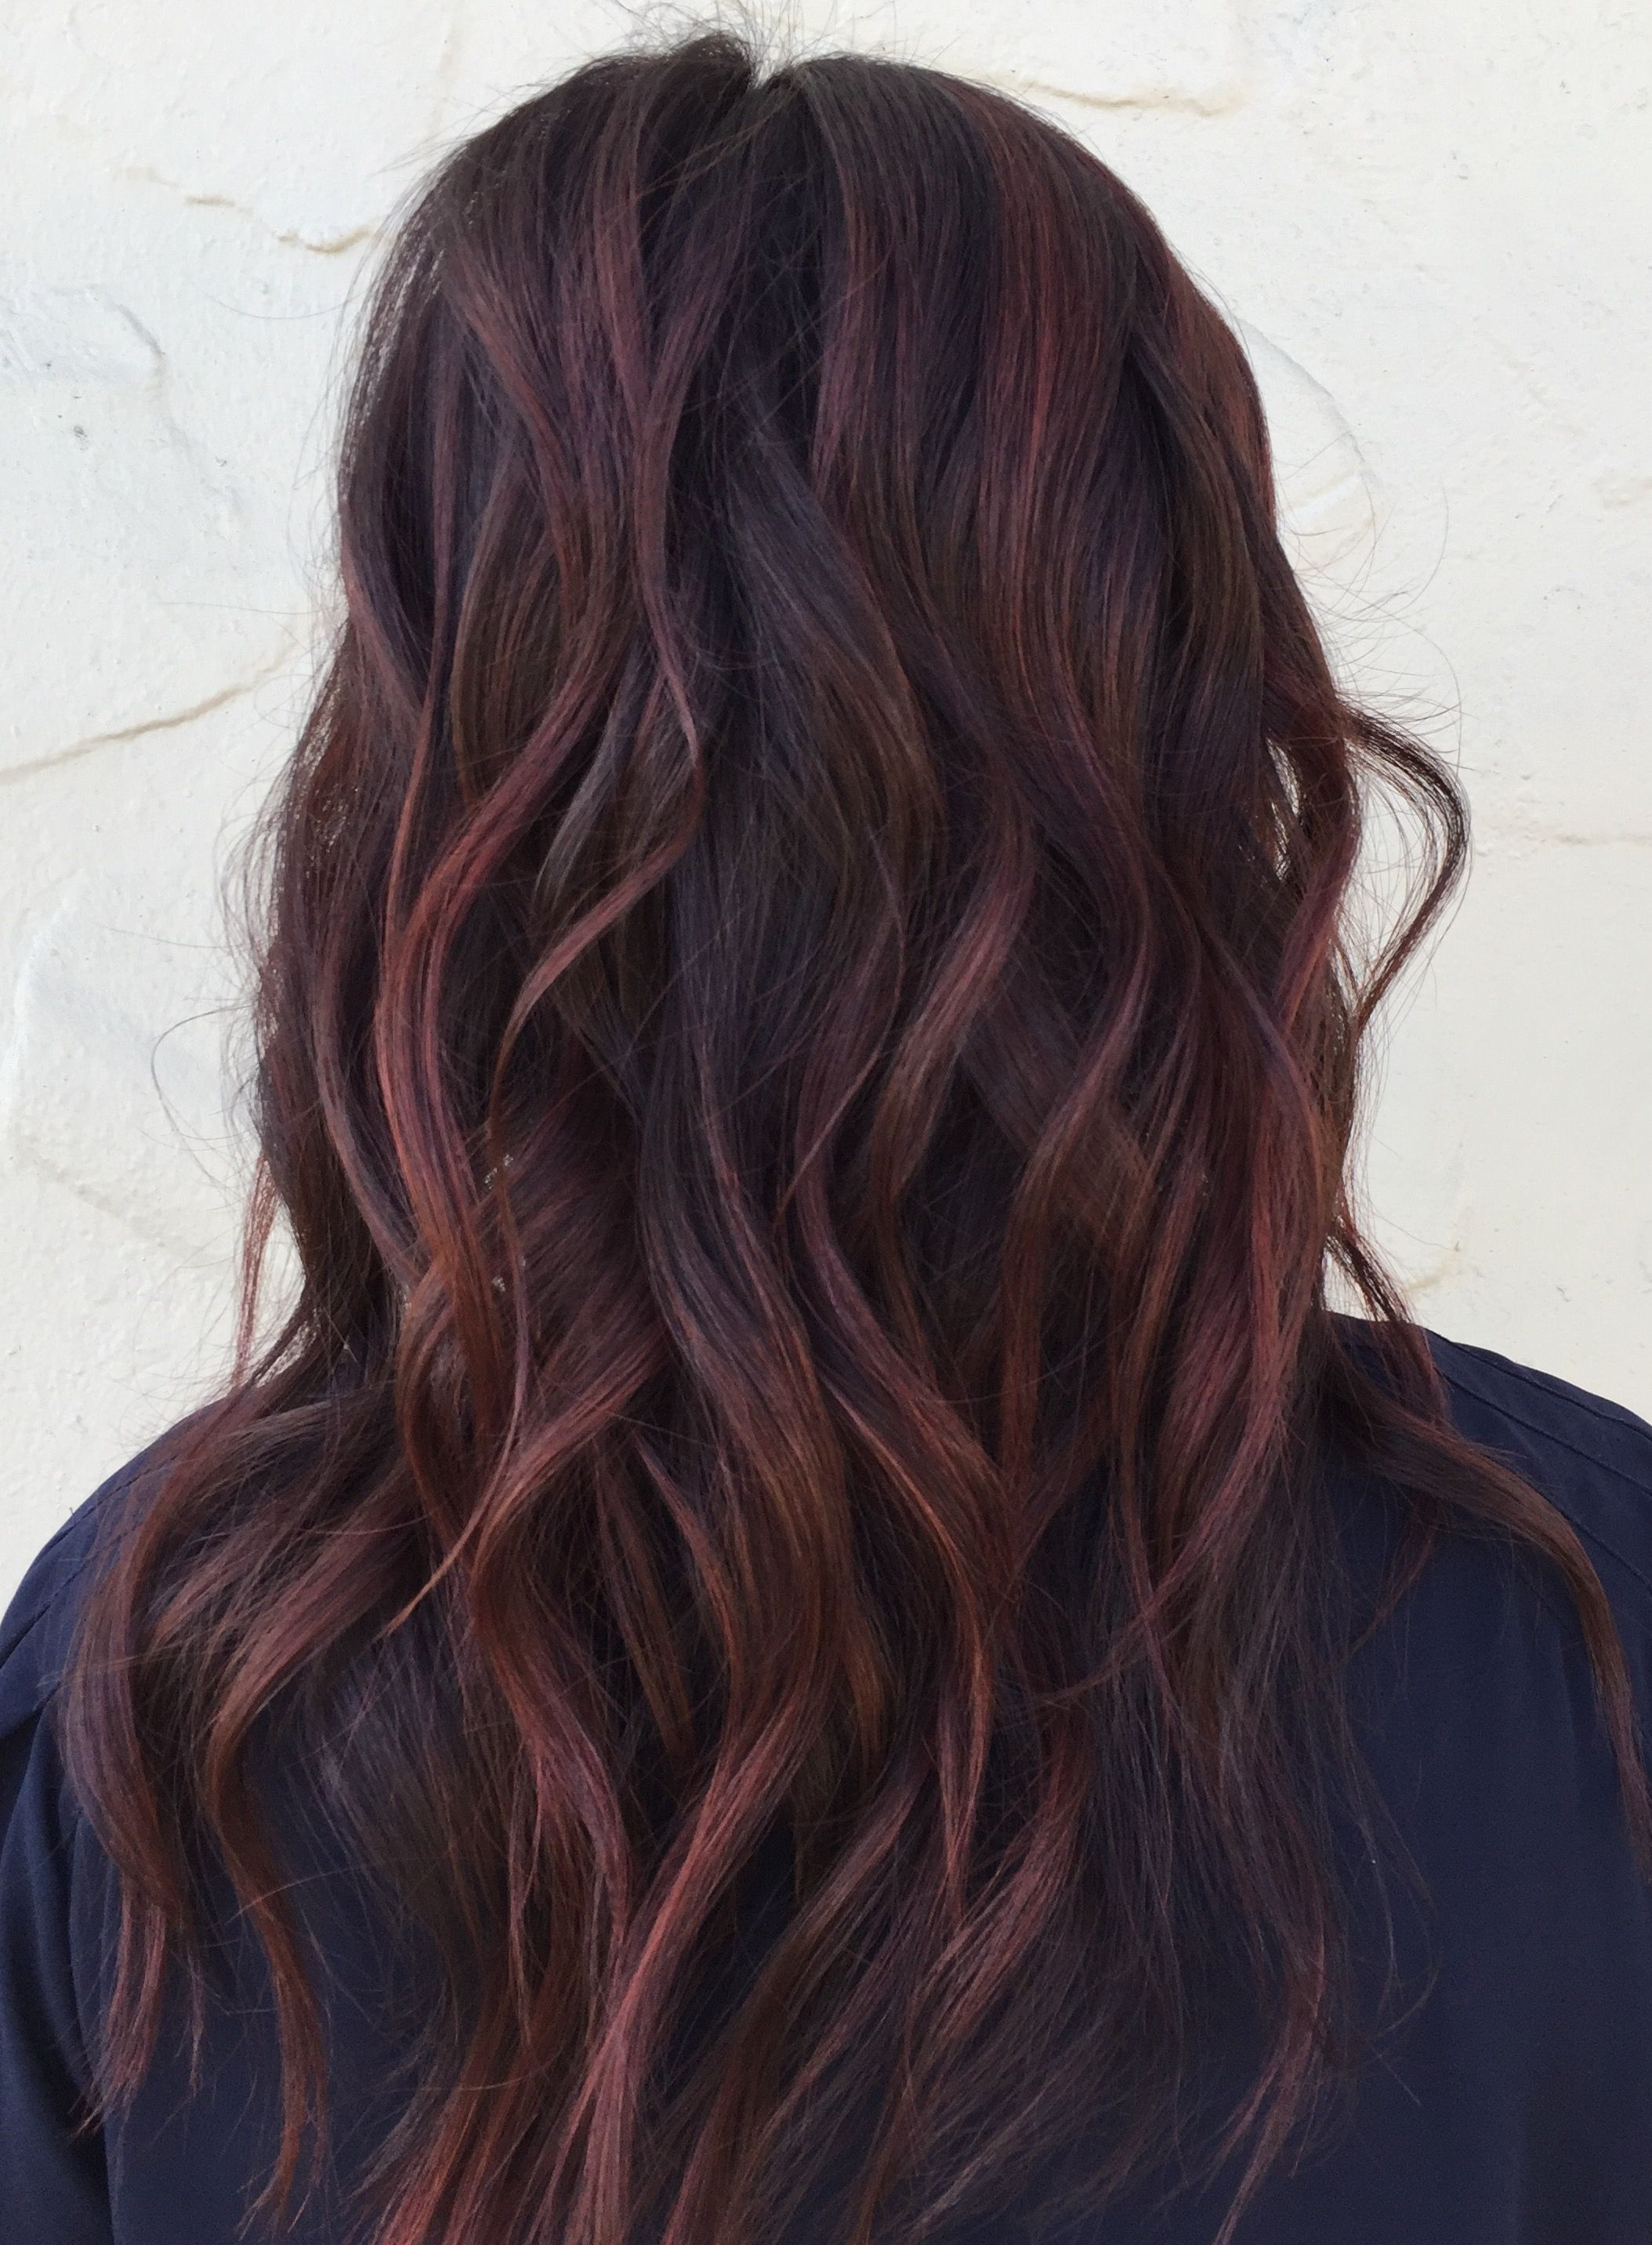 Winter Cool Tones Balayage Brunette Hair Color Hair Tint Red Tint Hair